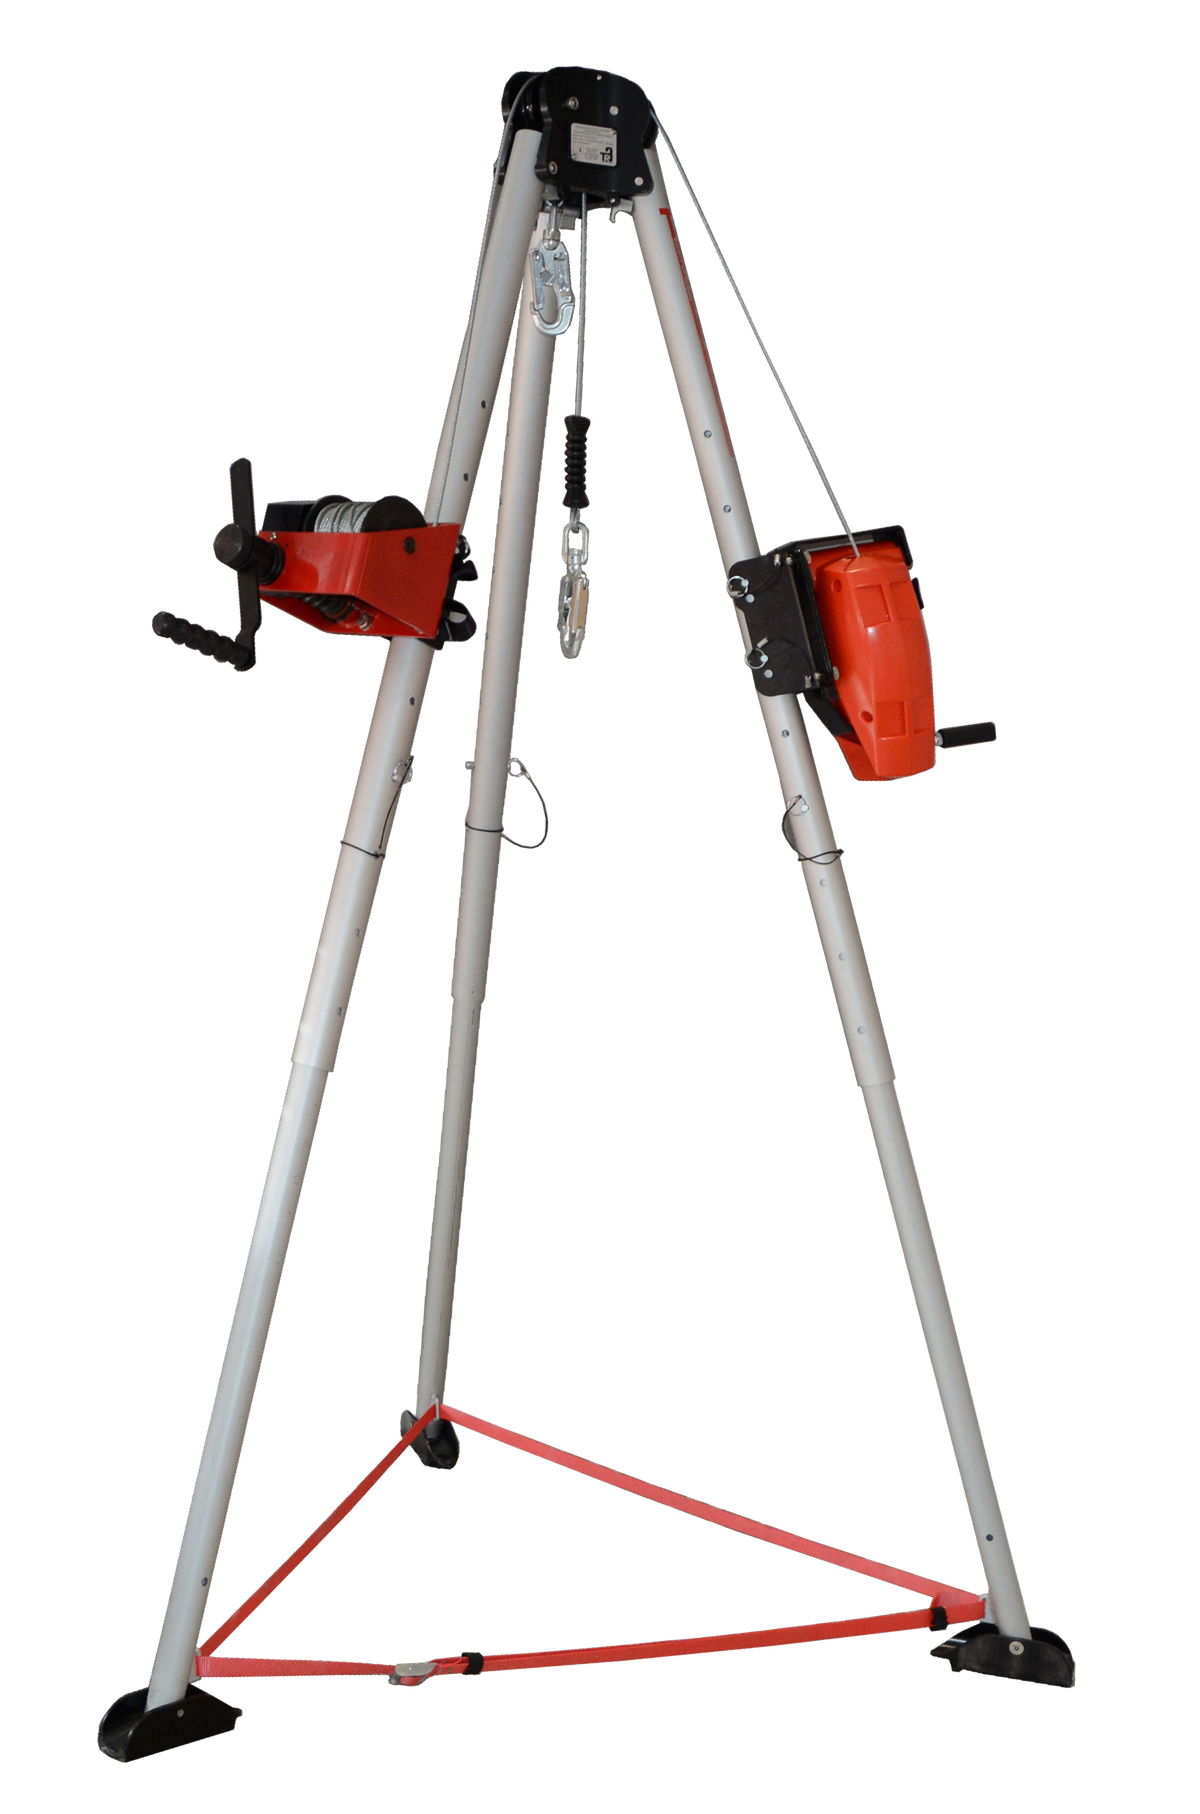 Pure Safety Group Introduces Checkmate TR3 Tripod From